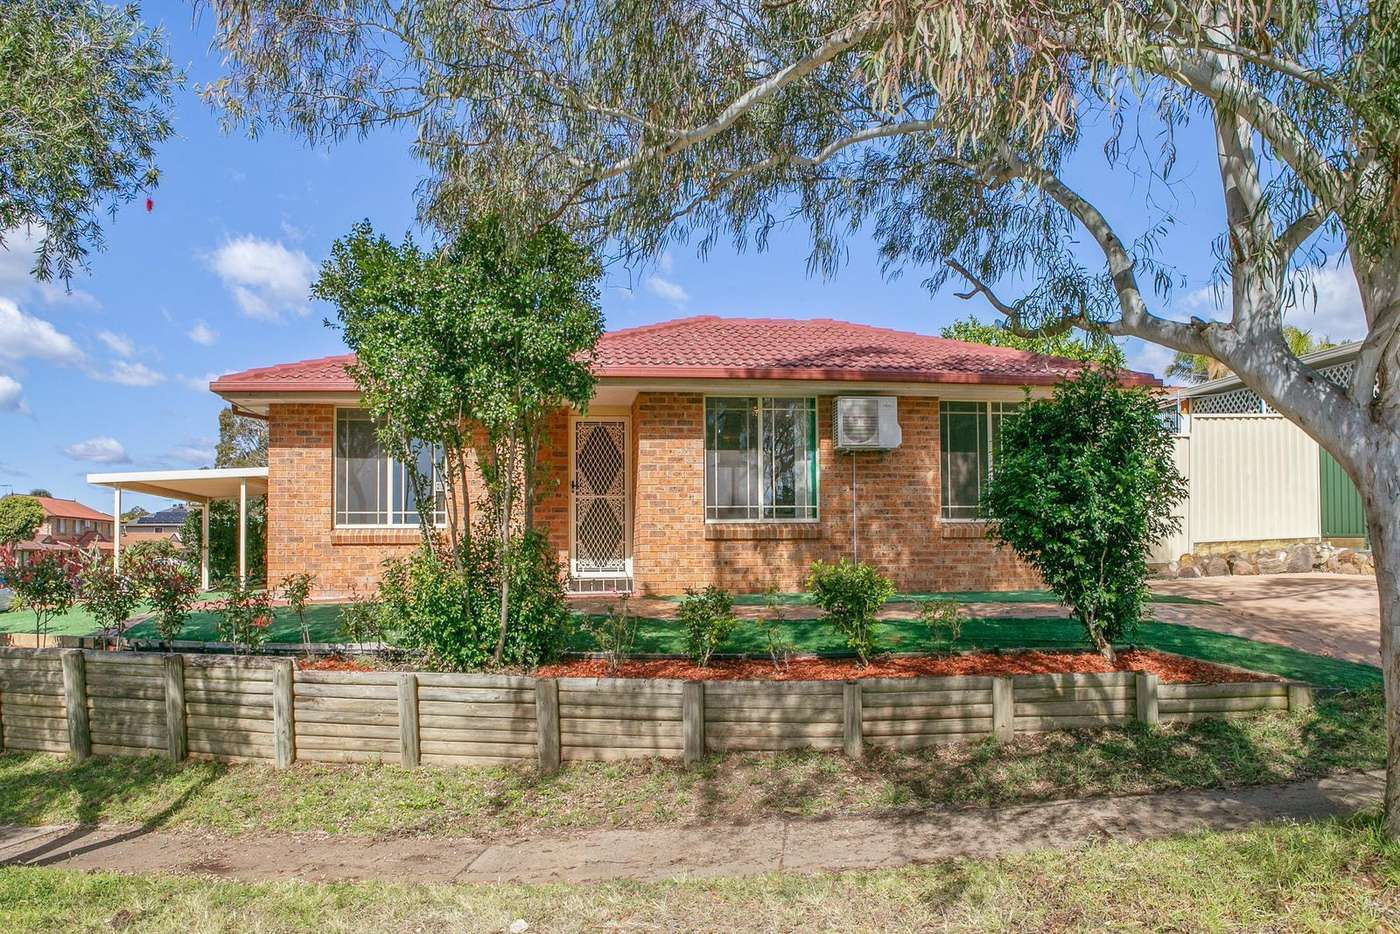 Main view of Homely house listing, 63 Swan Circuit, Green Valley NSW 2168